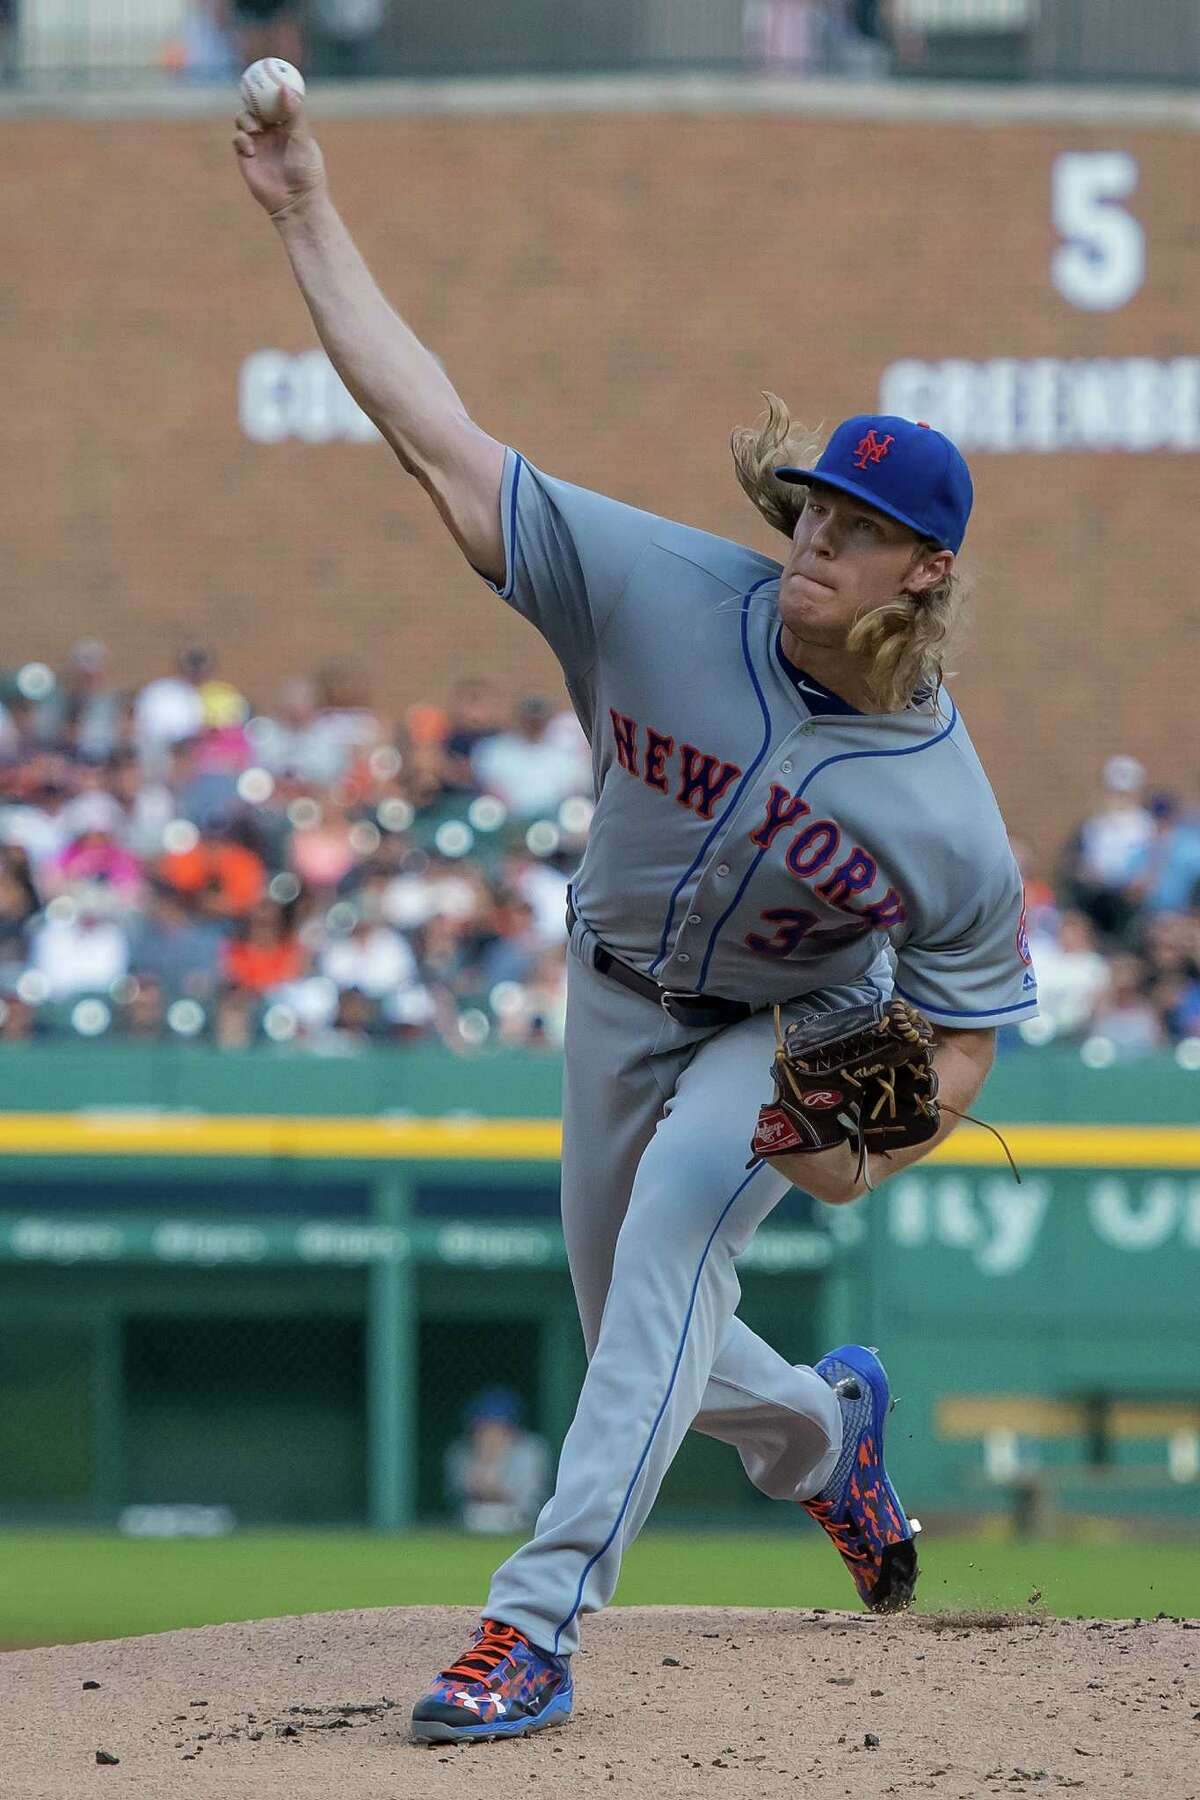 DETROIT, MI - AUGUST 05: Noah Syndergaard #34 of the New York Mets pitches in the first inning during a MLB game against the Detroit Tigers at Comerica Park on August 5, 2016 in Detroit, Michigan. (Photo by Dave Reginek/Getty Images) ORG XMIT: 607682919